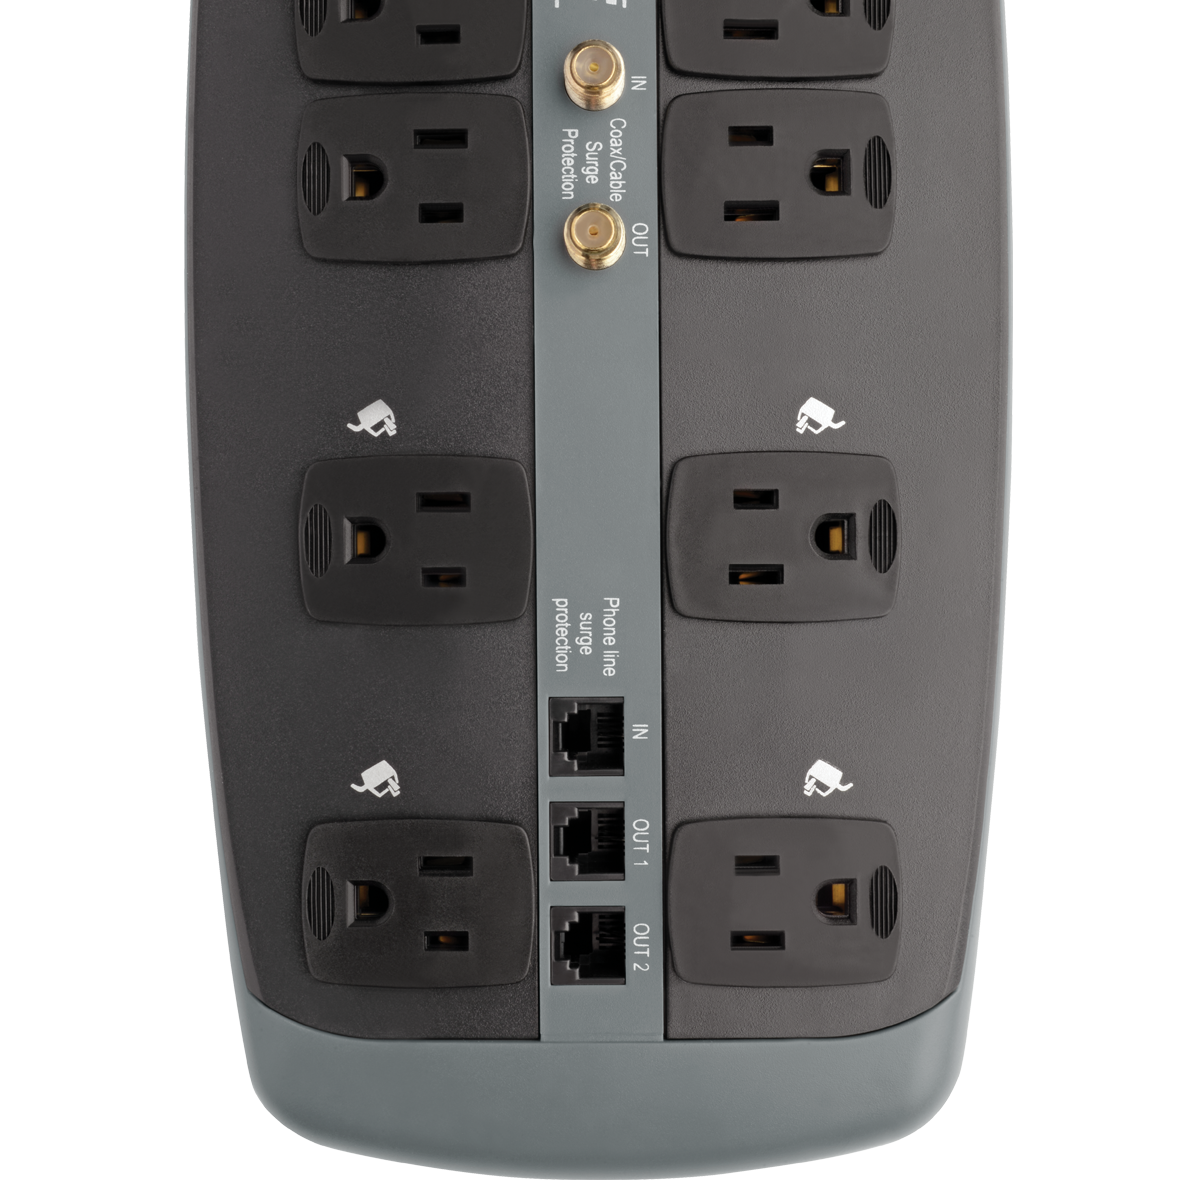 Tripp Lite Surge Protector 120v 10 Outlet Rj11 Coax 8 Cord 3345 Wiring Diagram On Is A Cable Television Because It Joule By Office Depot Officemax